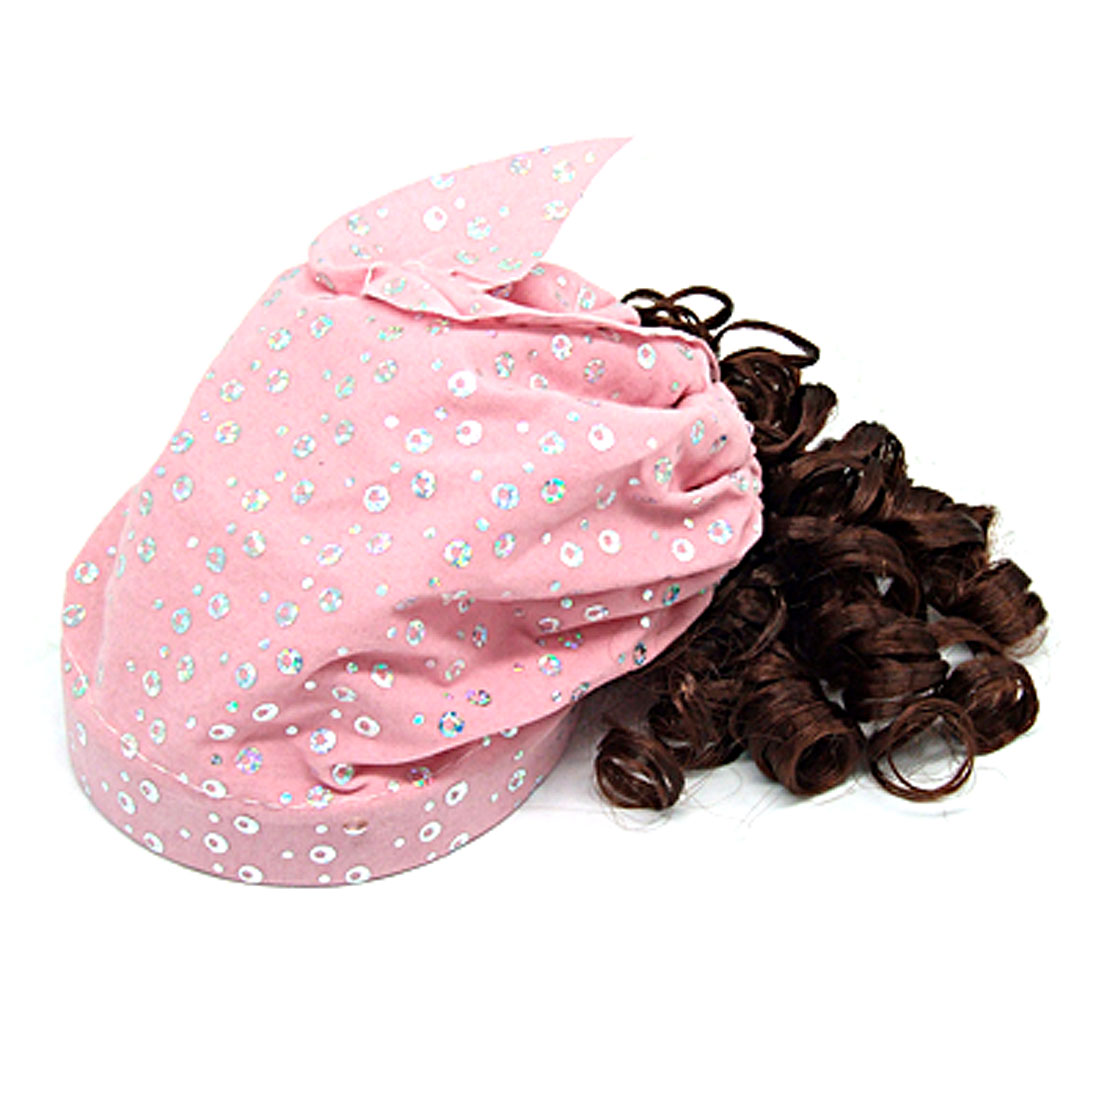 Girls Pink Cap w Brown Synthetic Hair Curly Wig Hairpiece